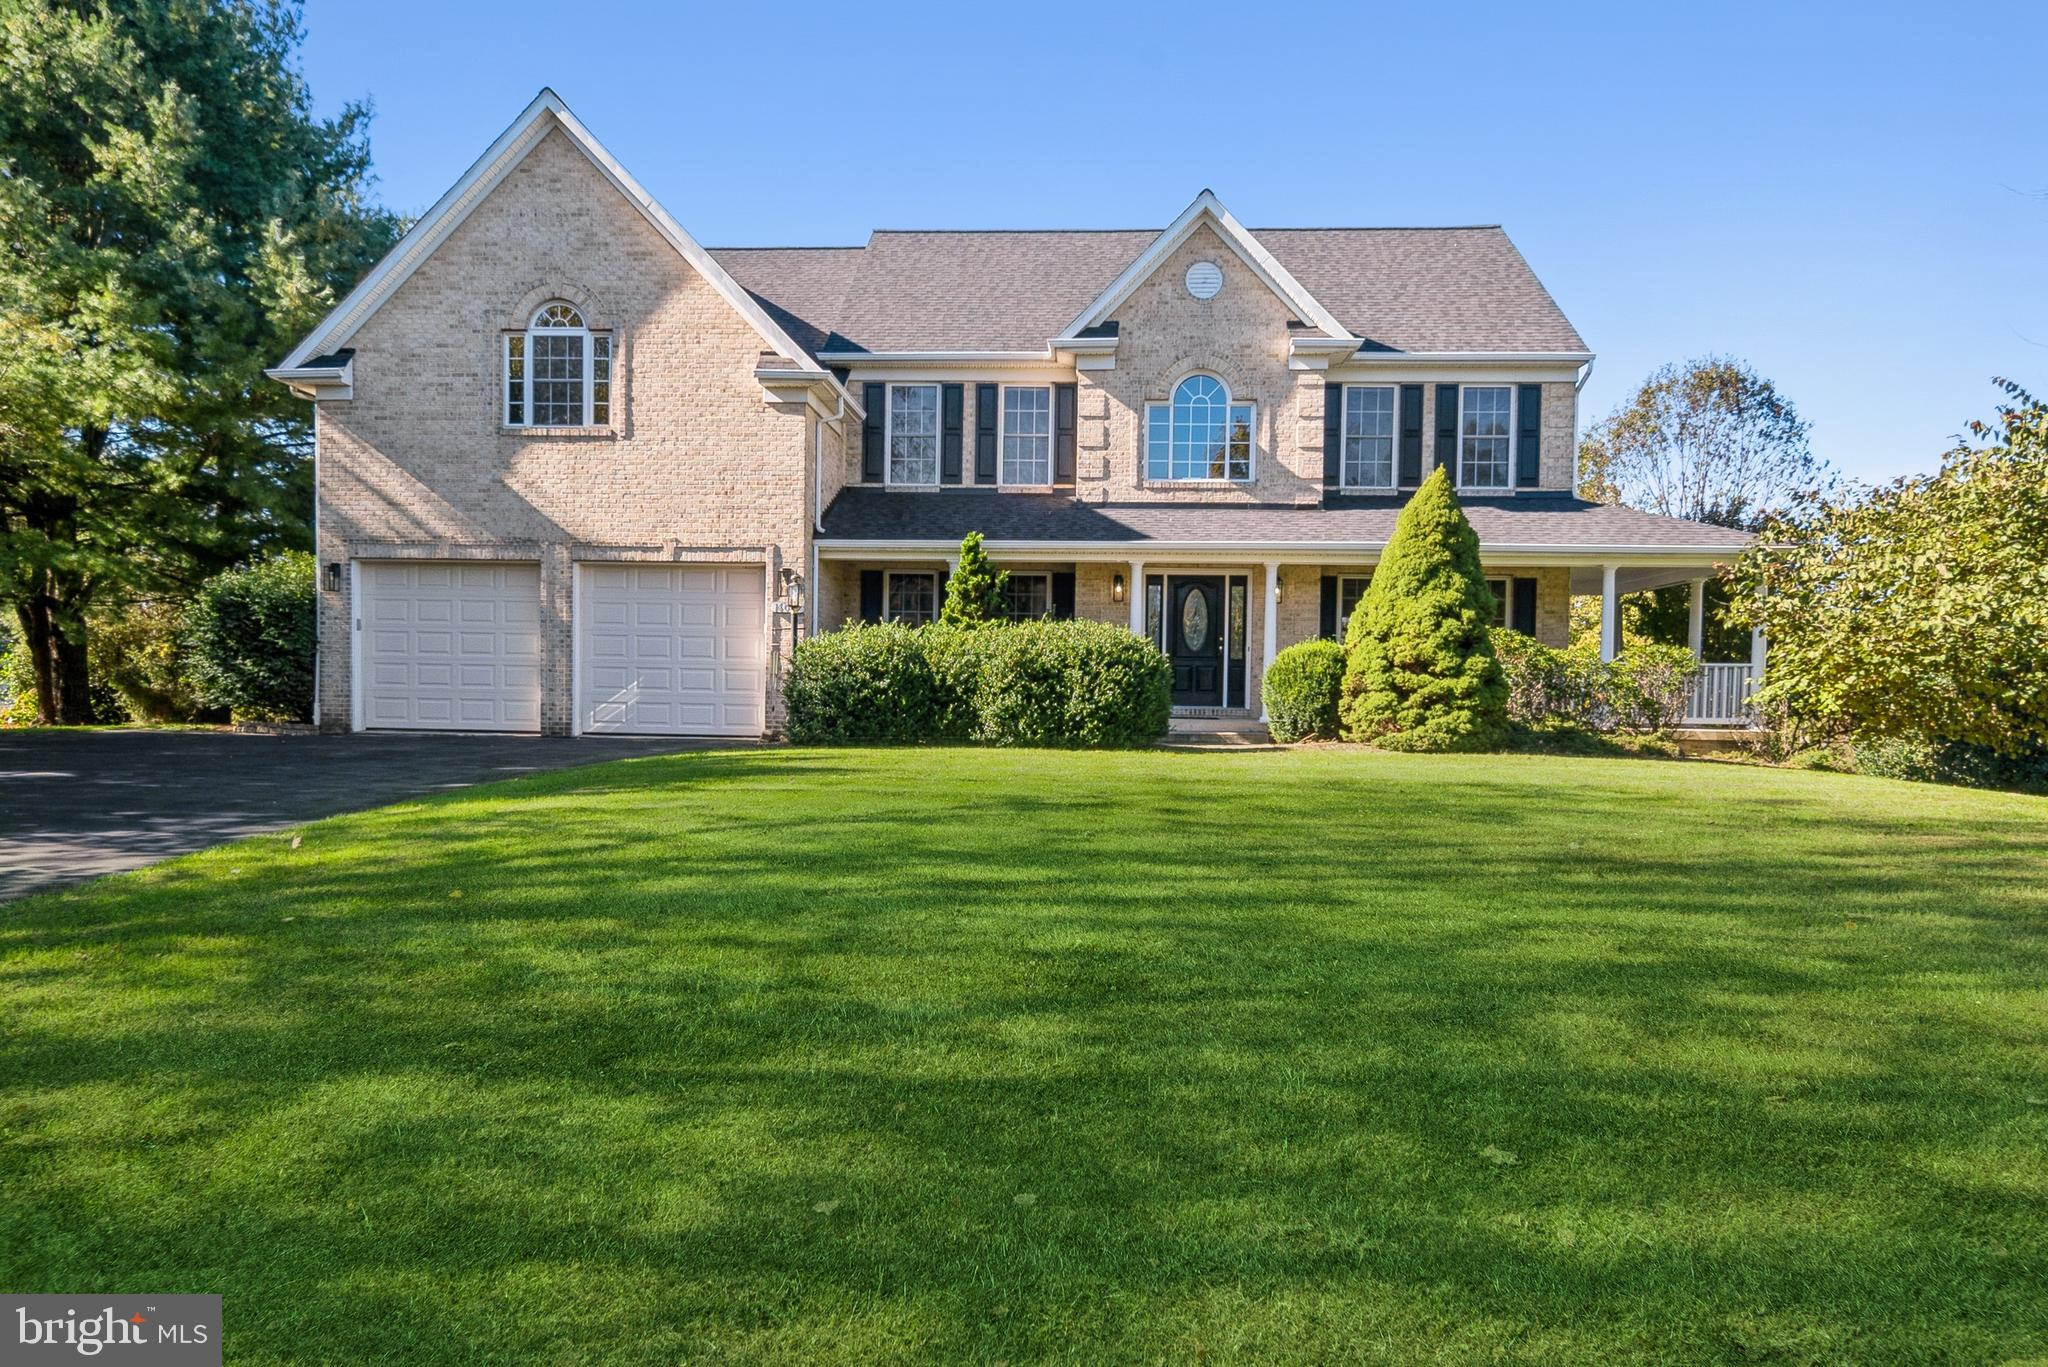 Welcome to Warfield's Grant of Woodbine in much sought after Western Howard County MD.  A custom des